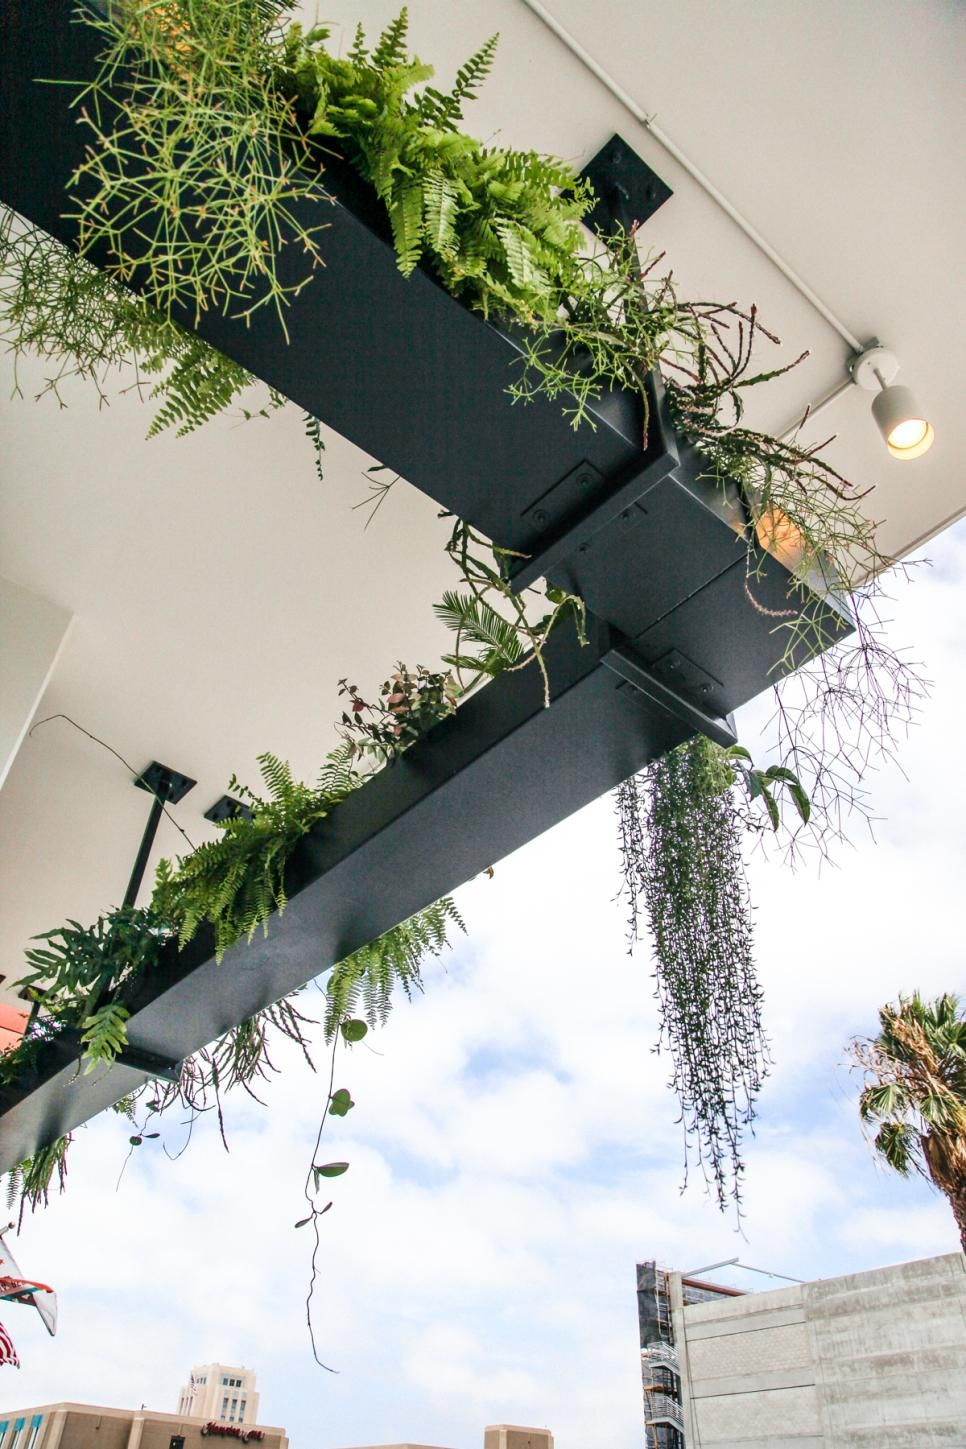 ferns and other foliage plants spill over the sides of this hanging planter which lines the. Black Bedroom Furniture Sets. Home Design Ideas